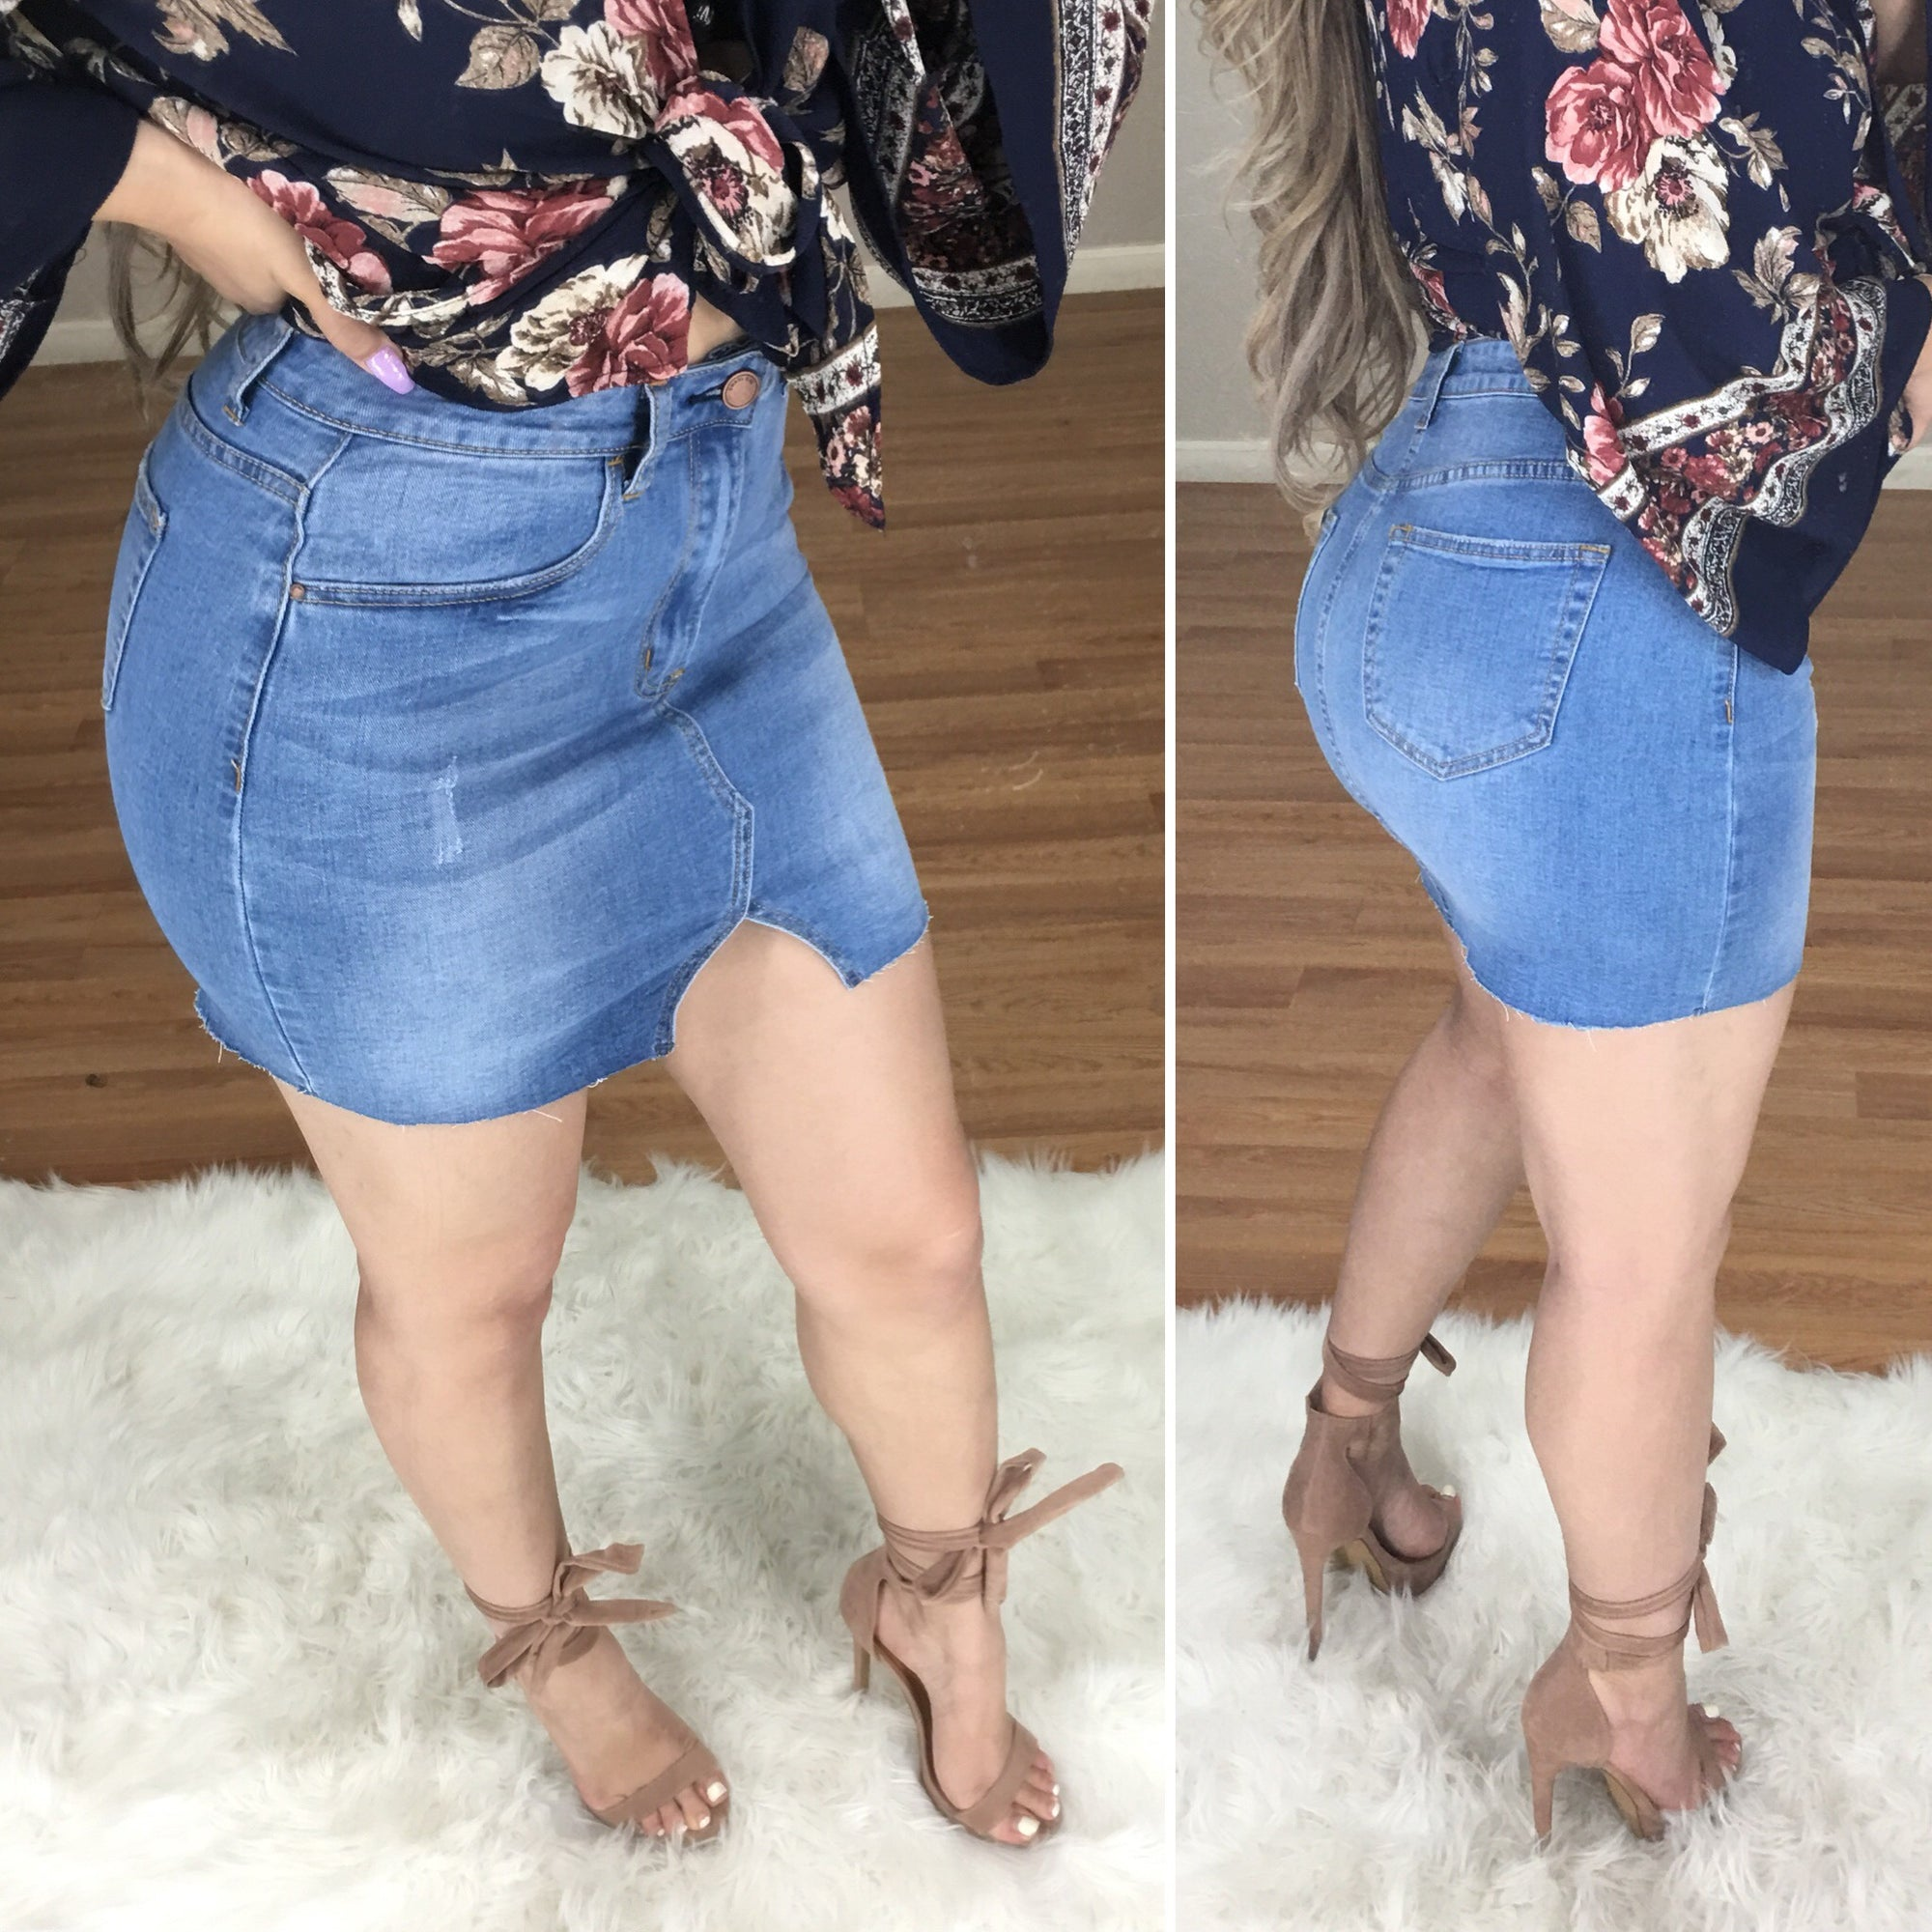 Valenica Denim Mini Skirt (Medium)